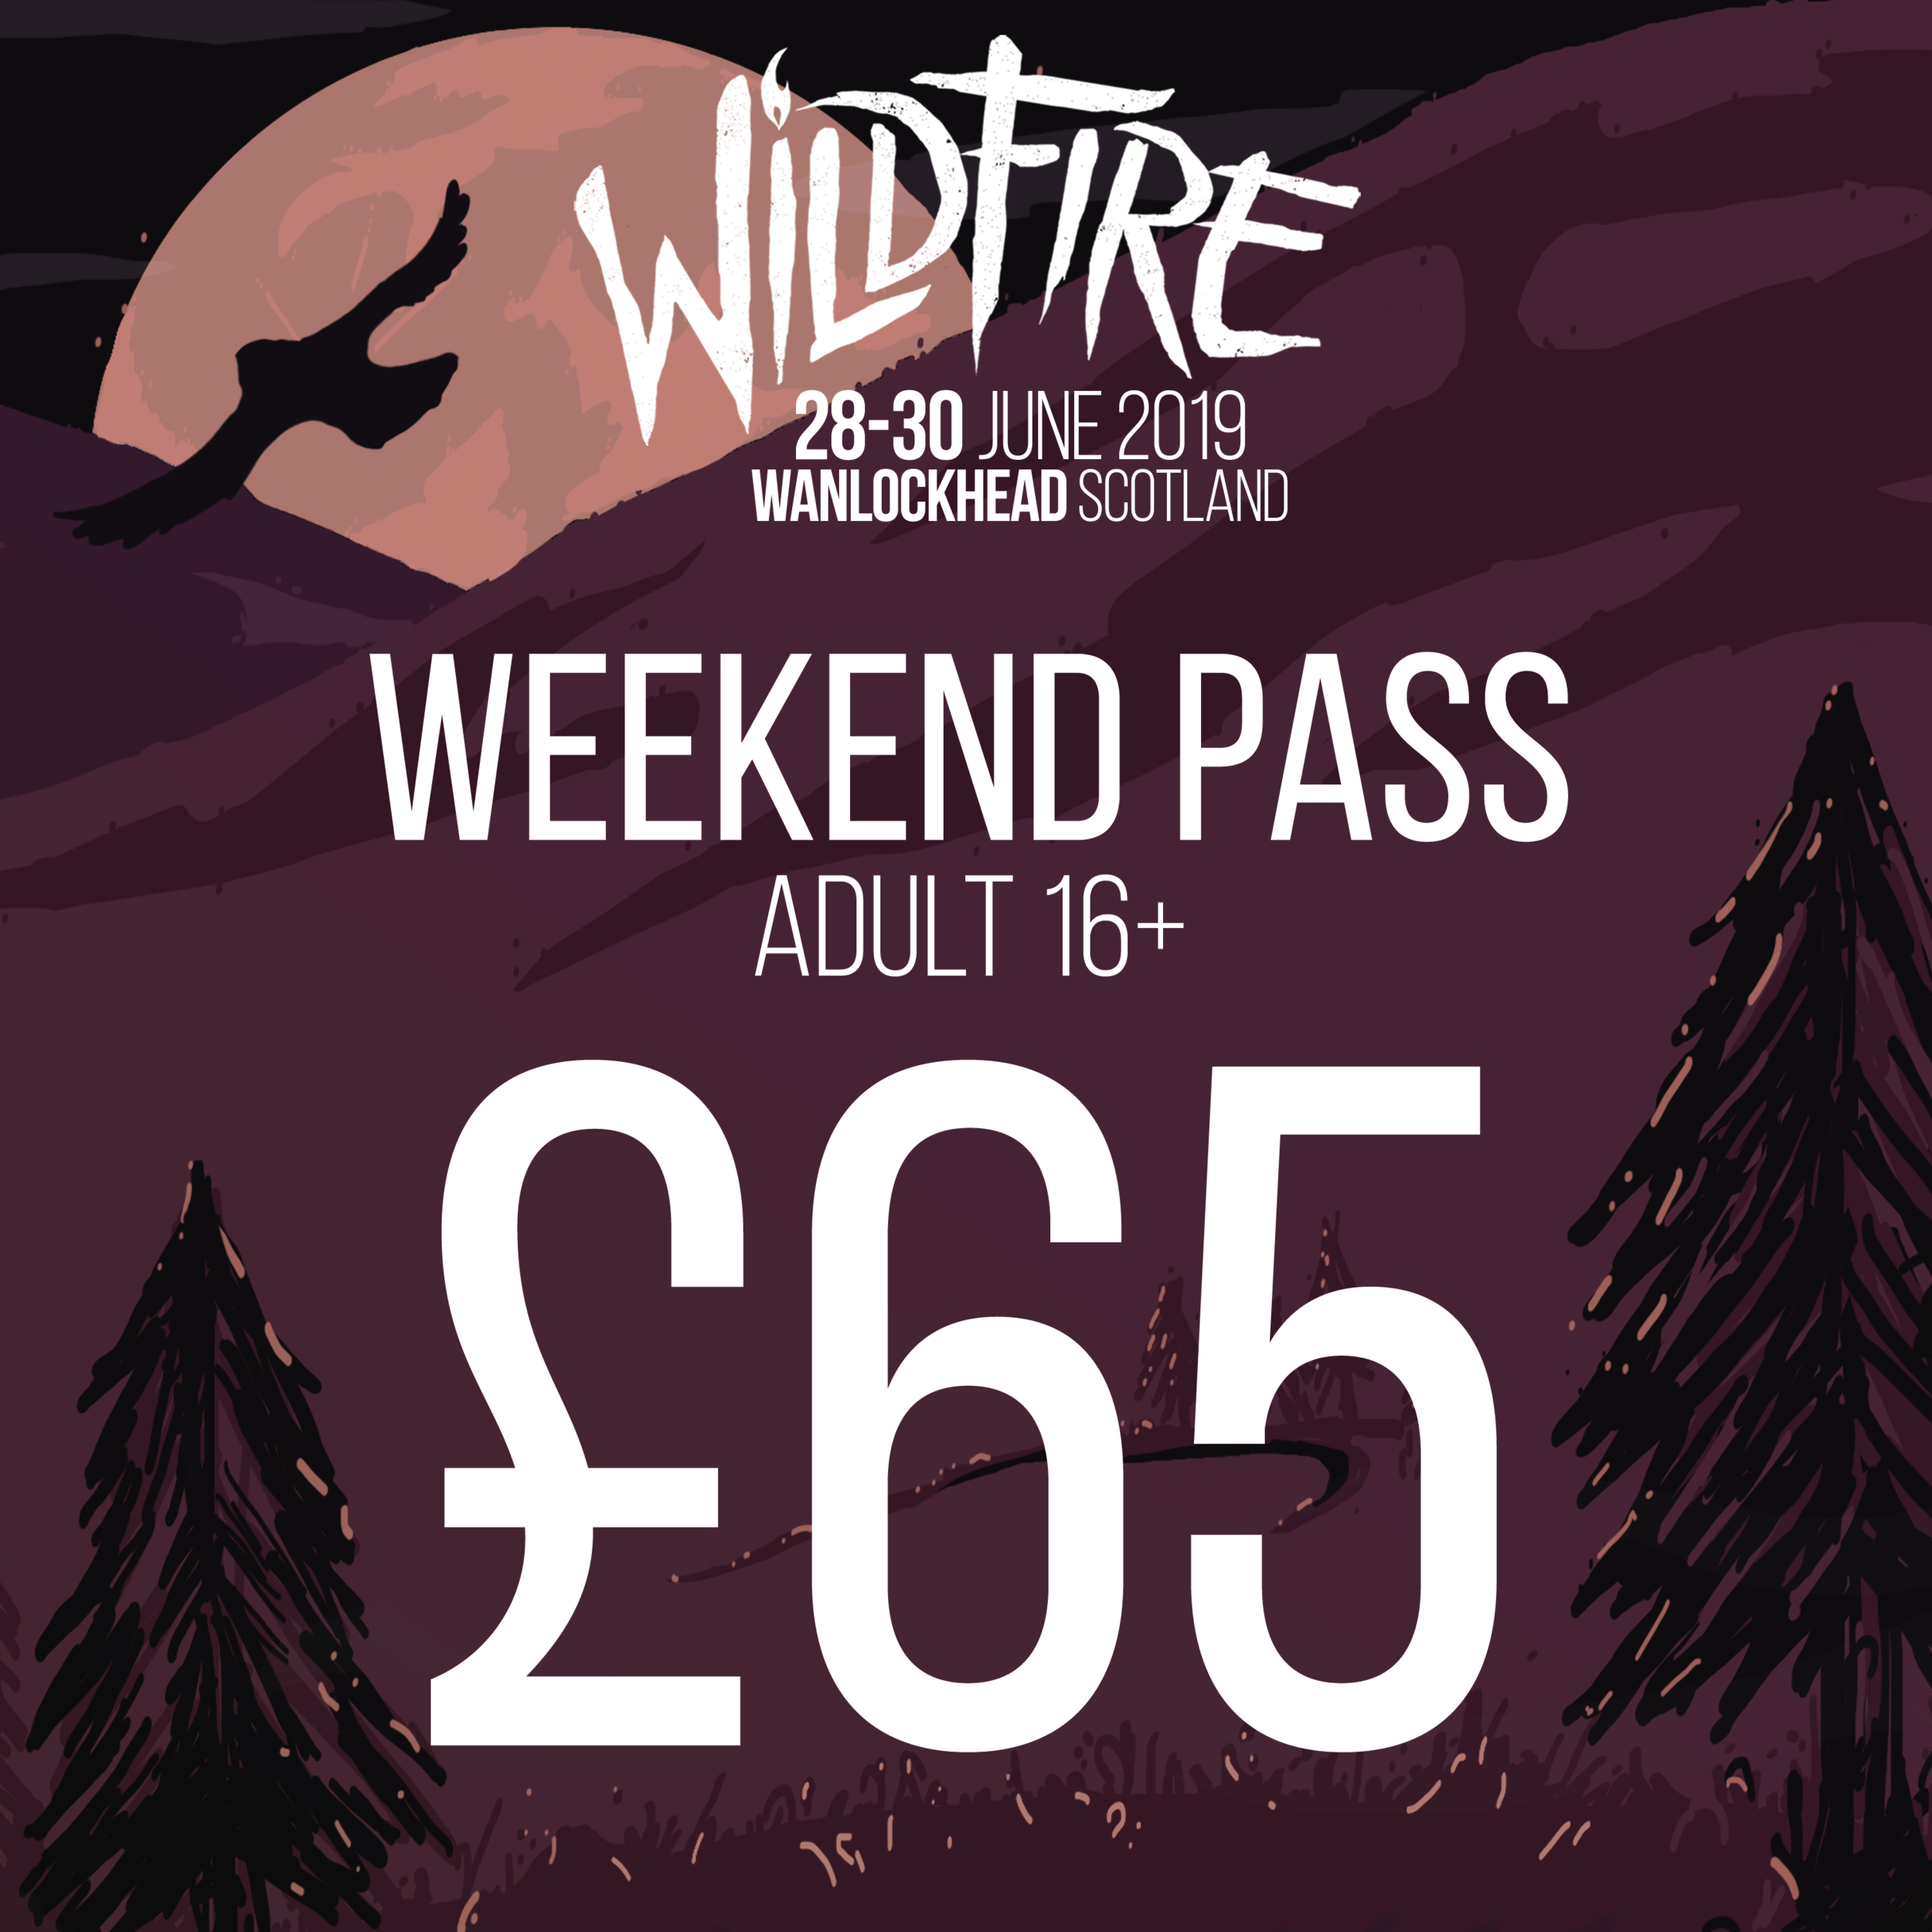 Weekend Pass Price Thumb2.png